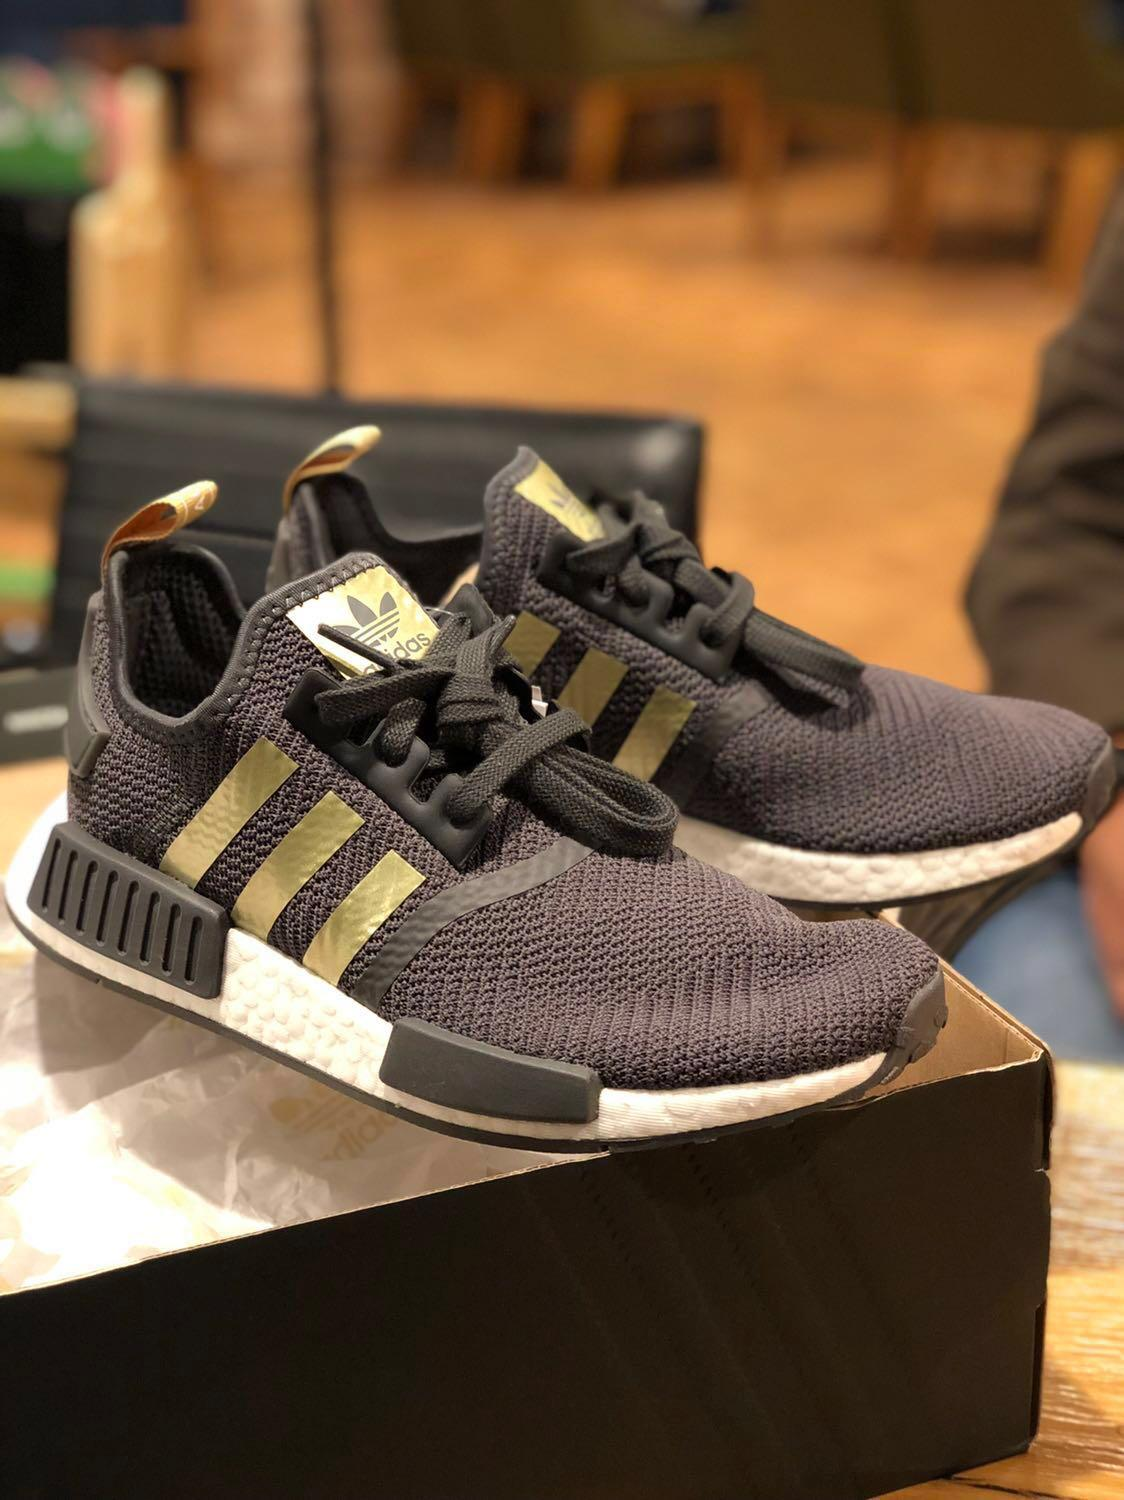 Adidas NMD R1 gold grey, Men's Fashion, Footwear, Sneakers